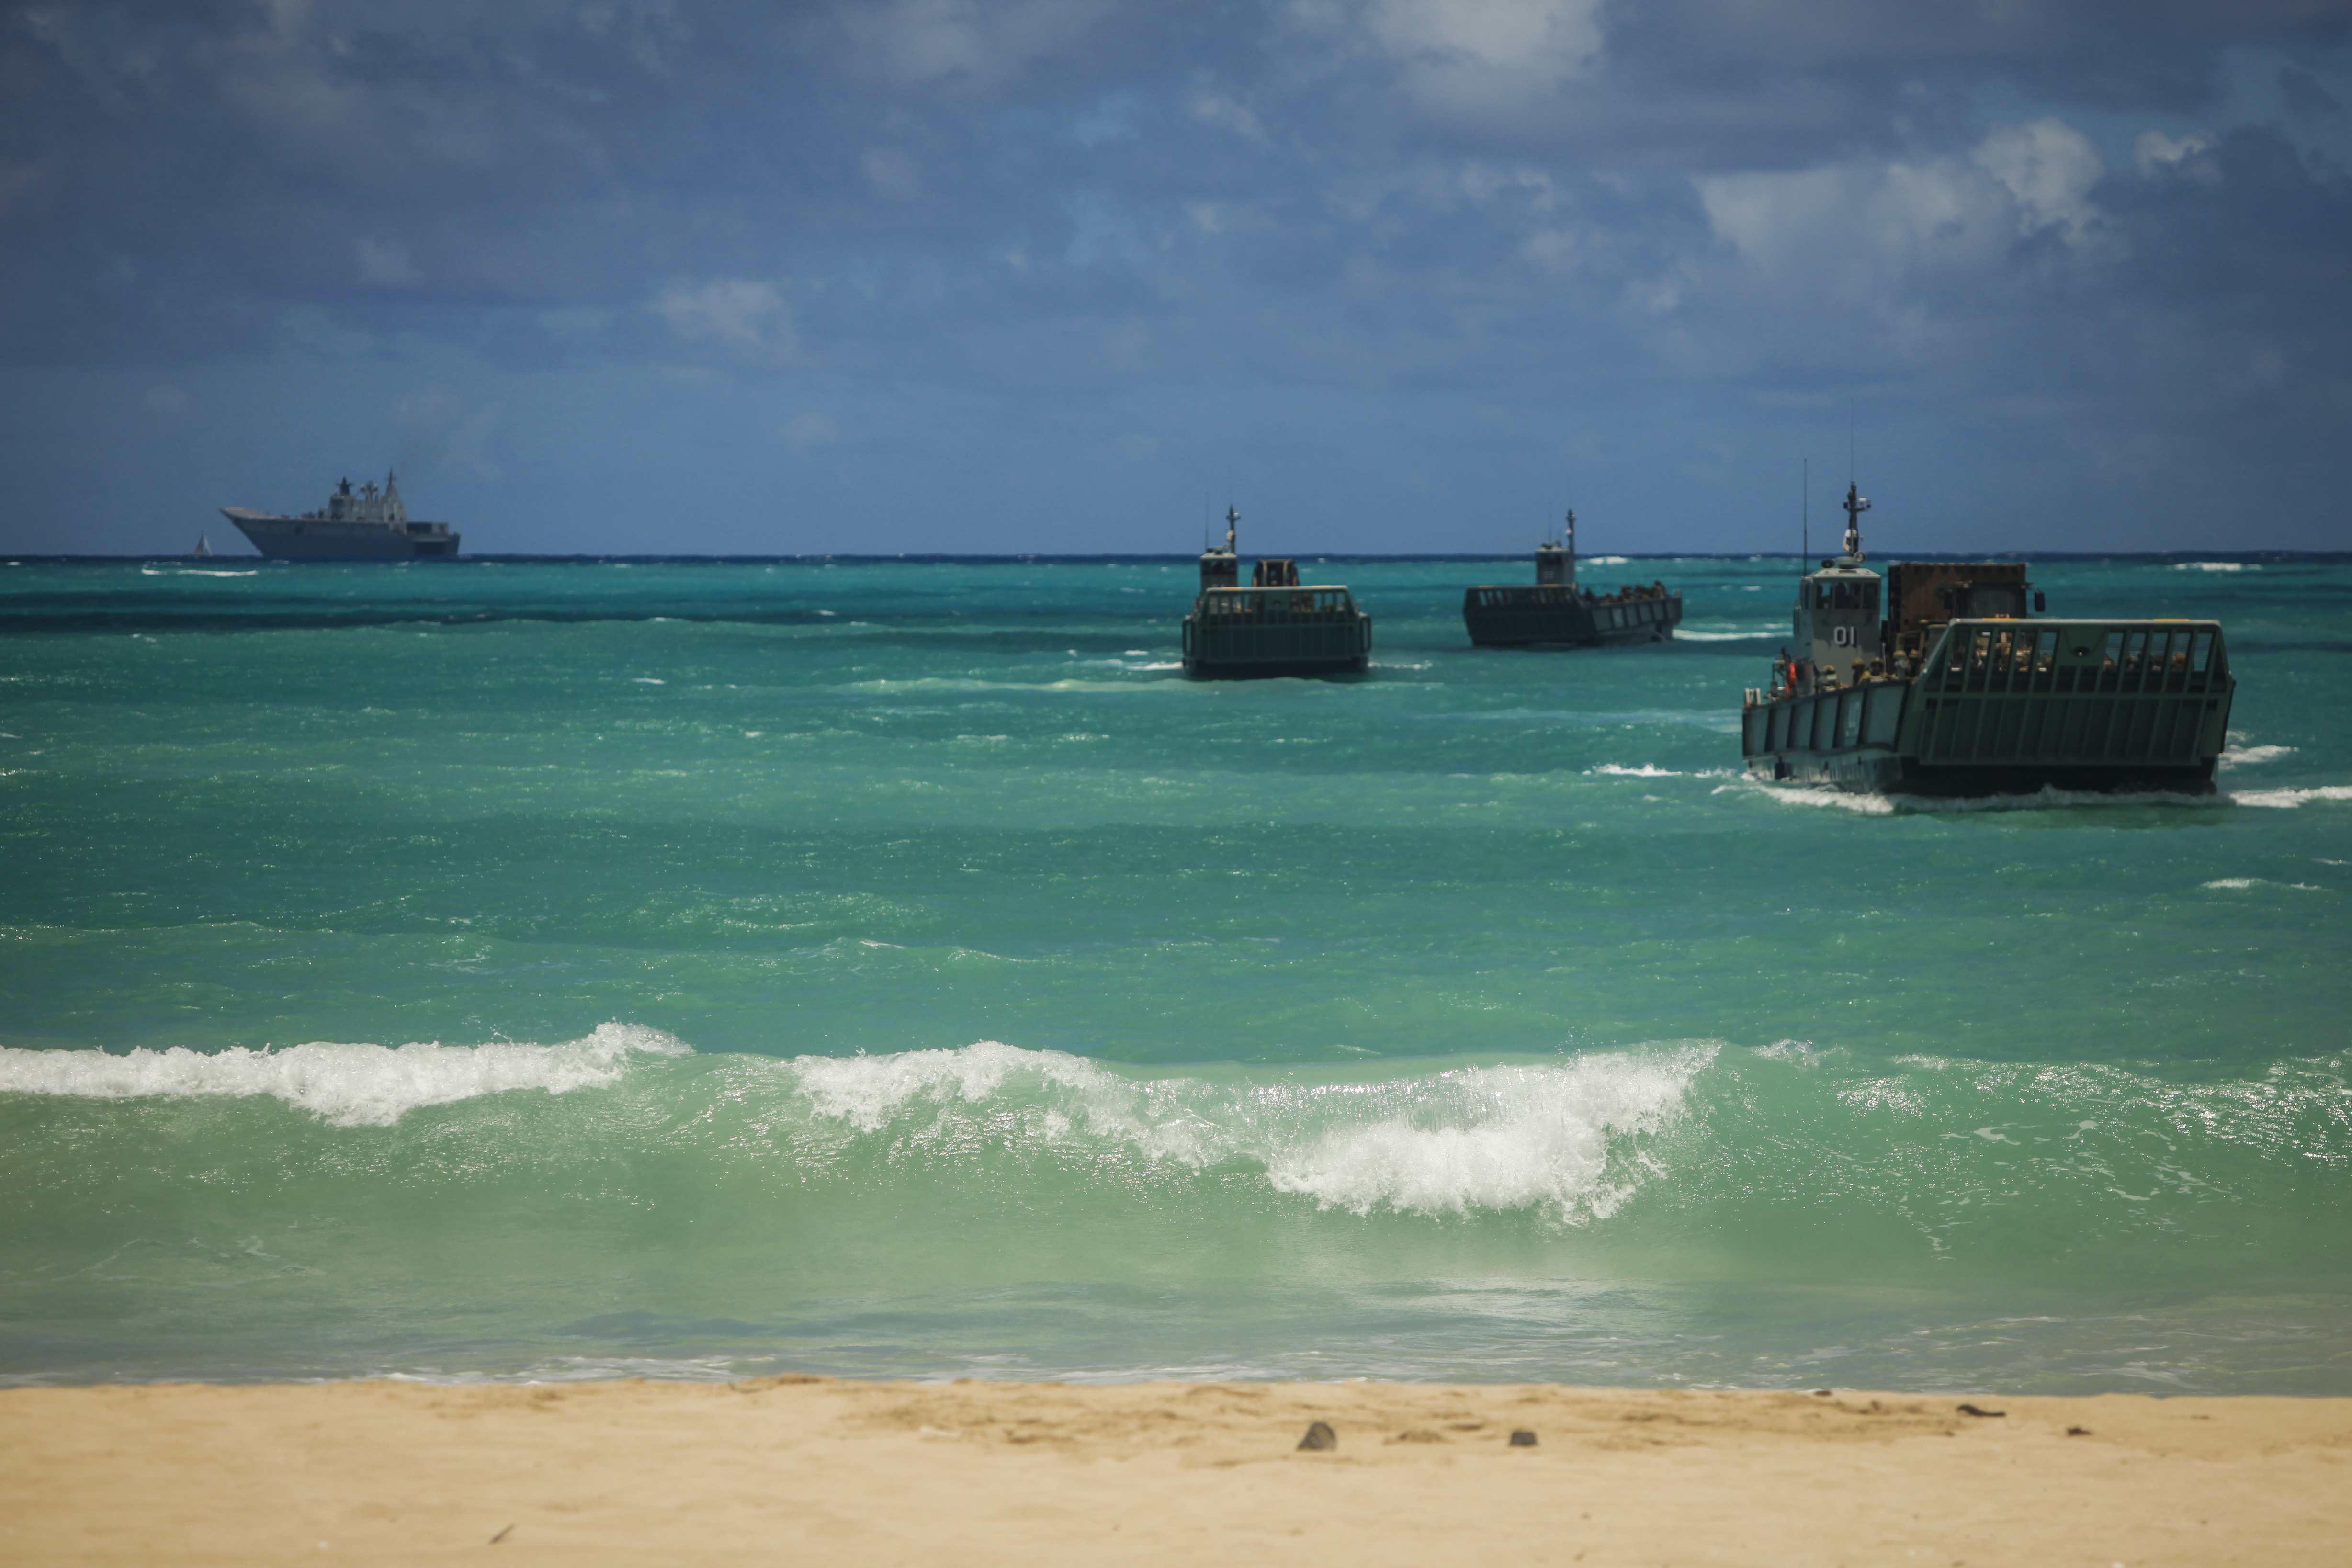 A Royal Australian Navy LHD Landing Craft transports Australian, New Zealand, Tongan and U.S. armed forces to Marine Corps Training Area Bellows during Rim of the Pacific 2016 in Hawaii on July 30. US Marine Corps photo.